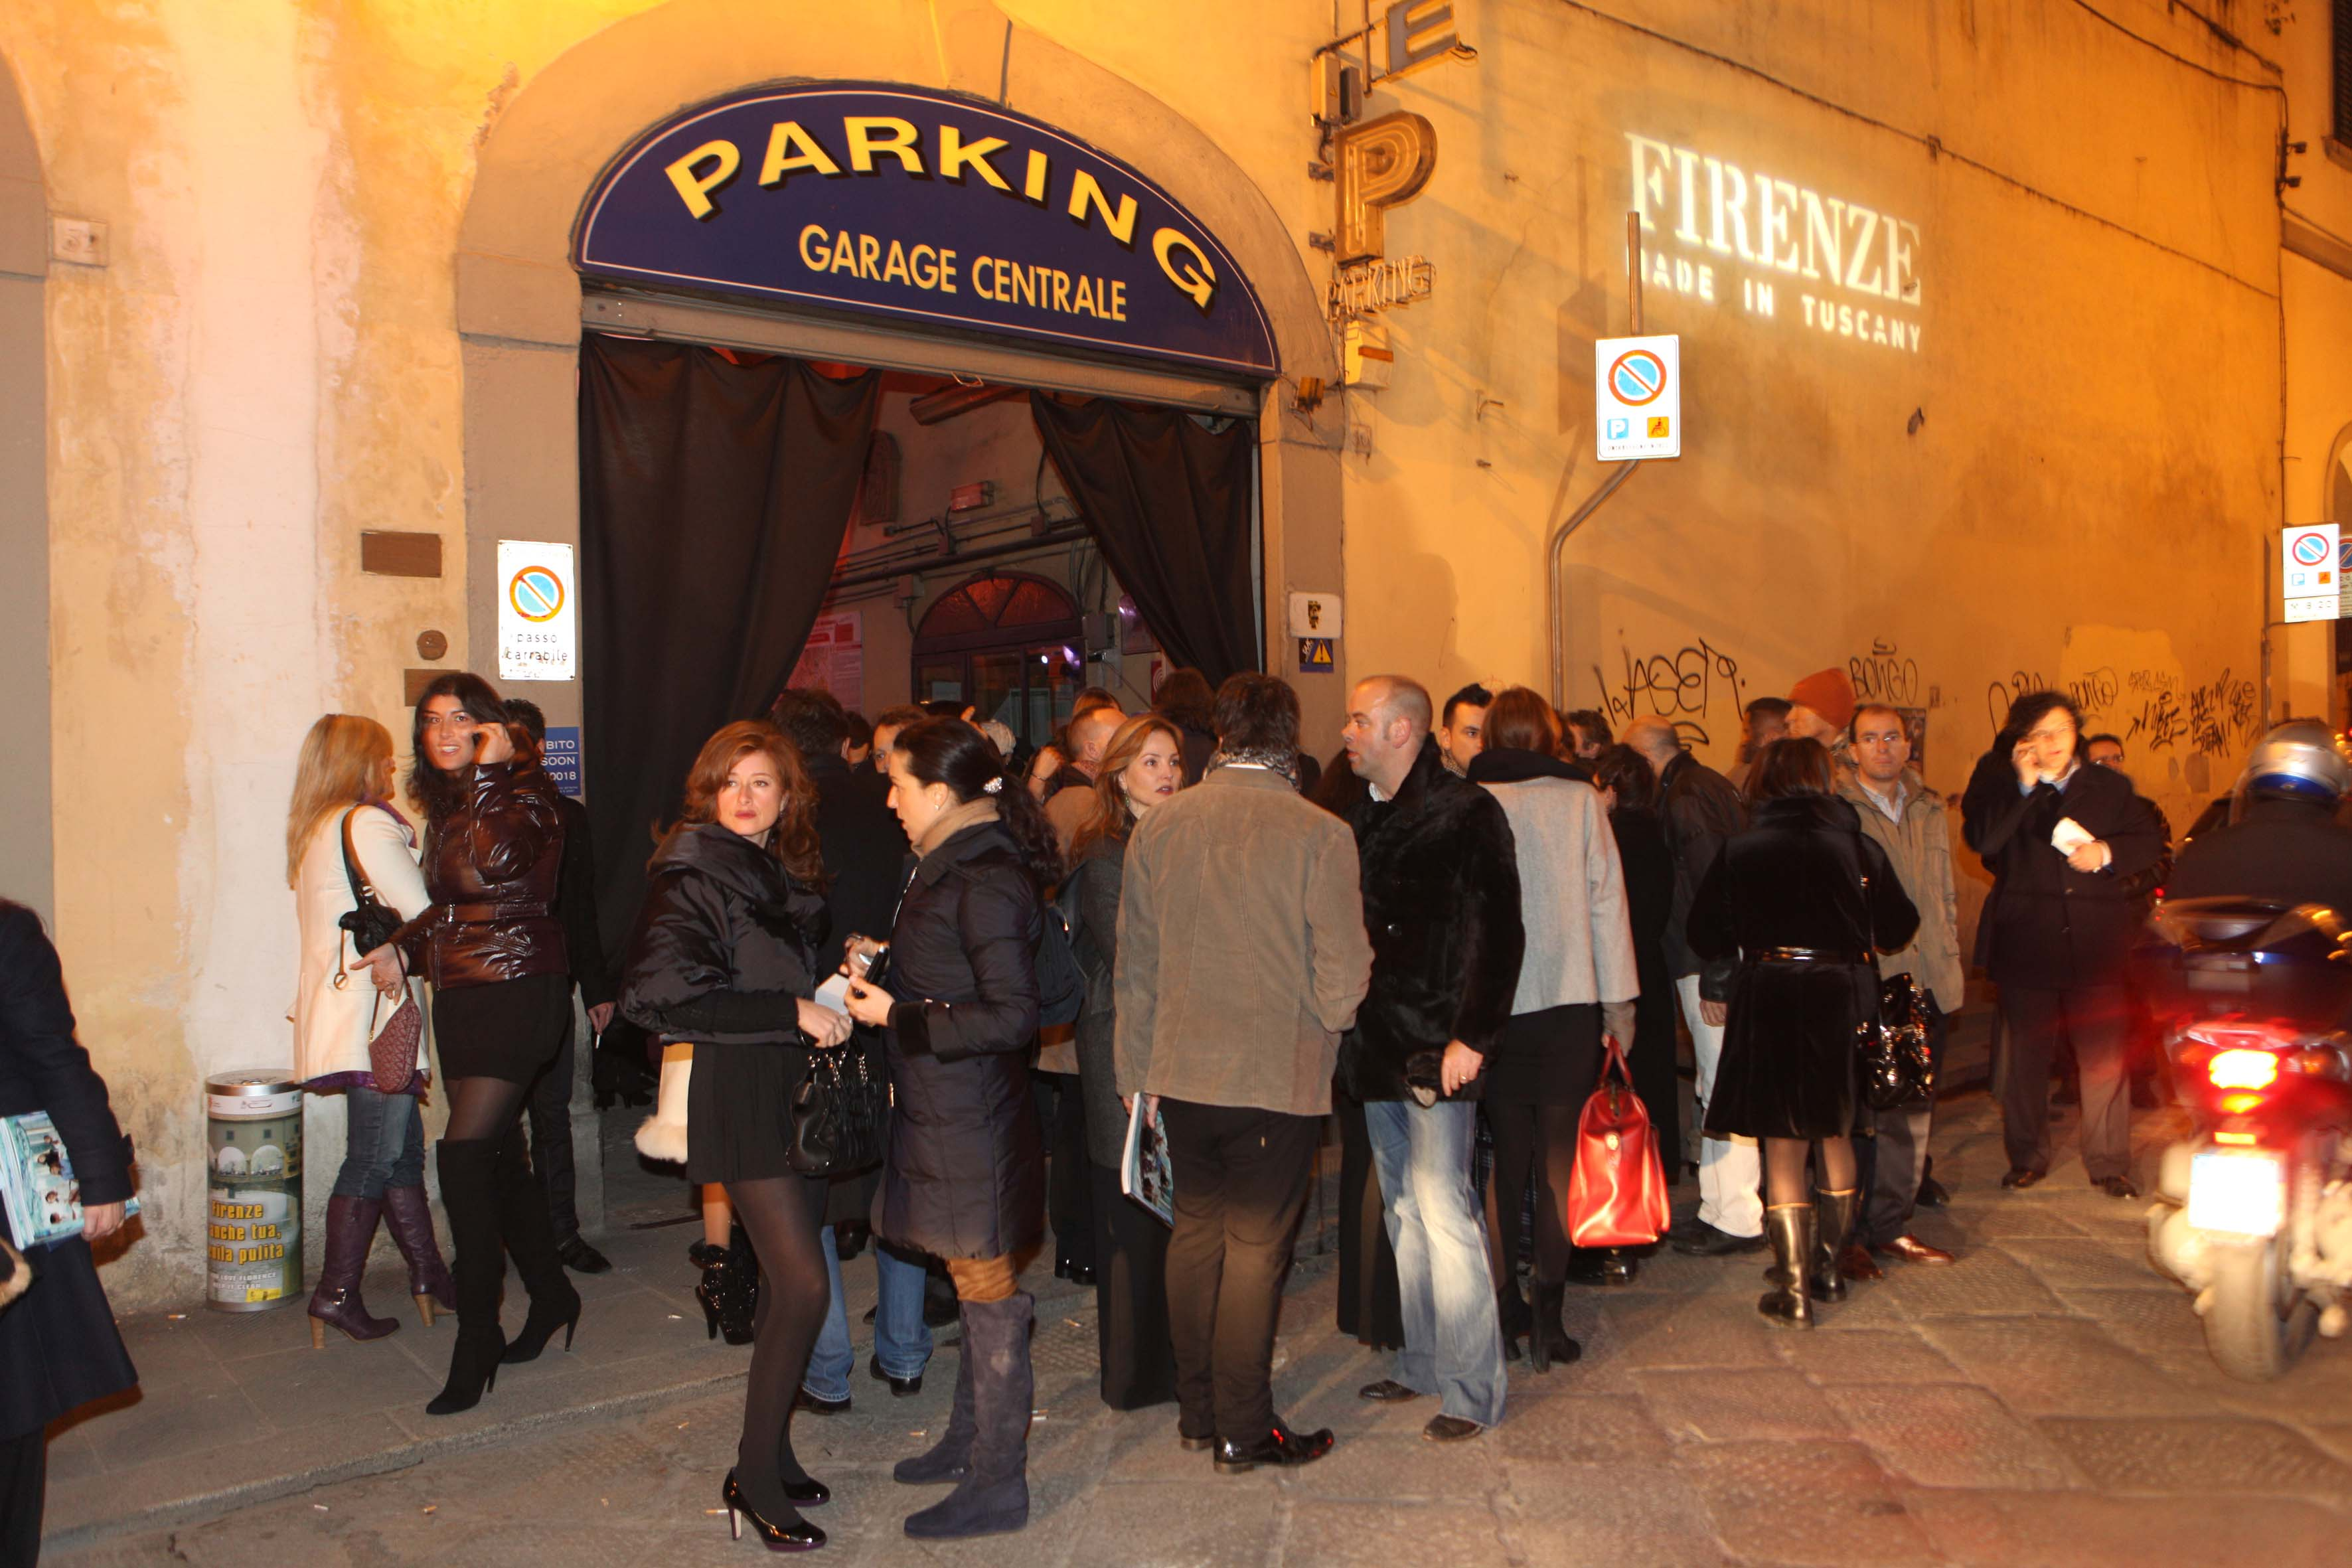 Presentazione Firenze Made in Tuscany n.13